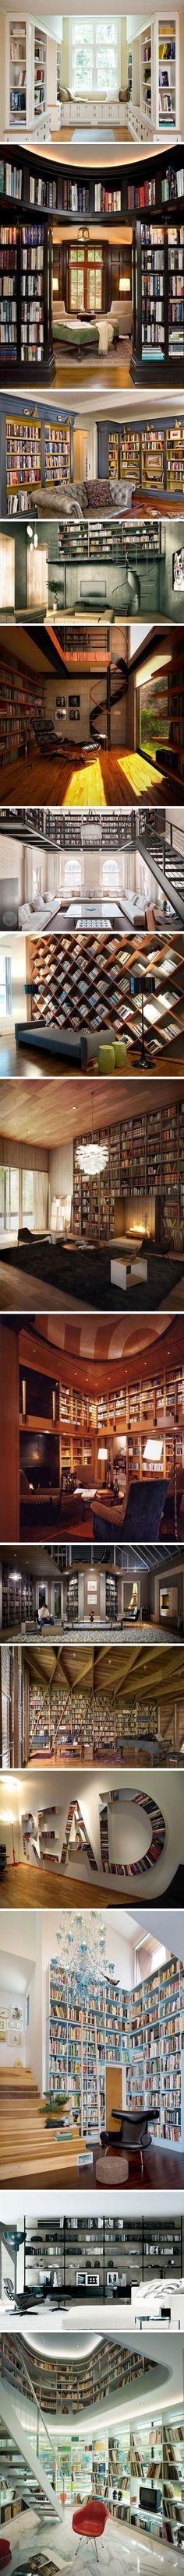 Book nooks/Library of my dreams- various kinds of heaven                                                                                                                                                                                 More